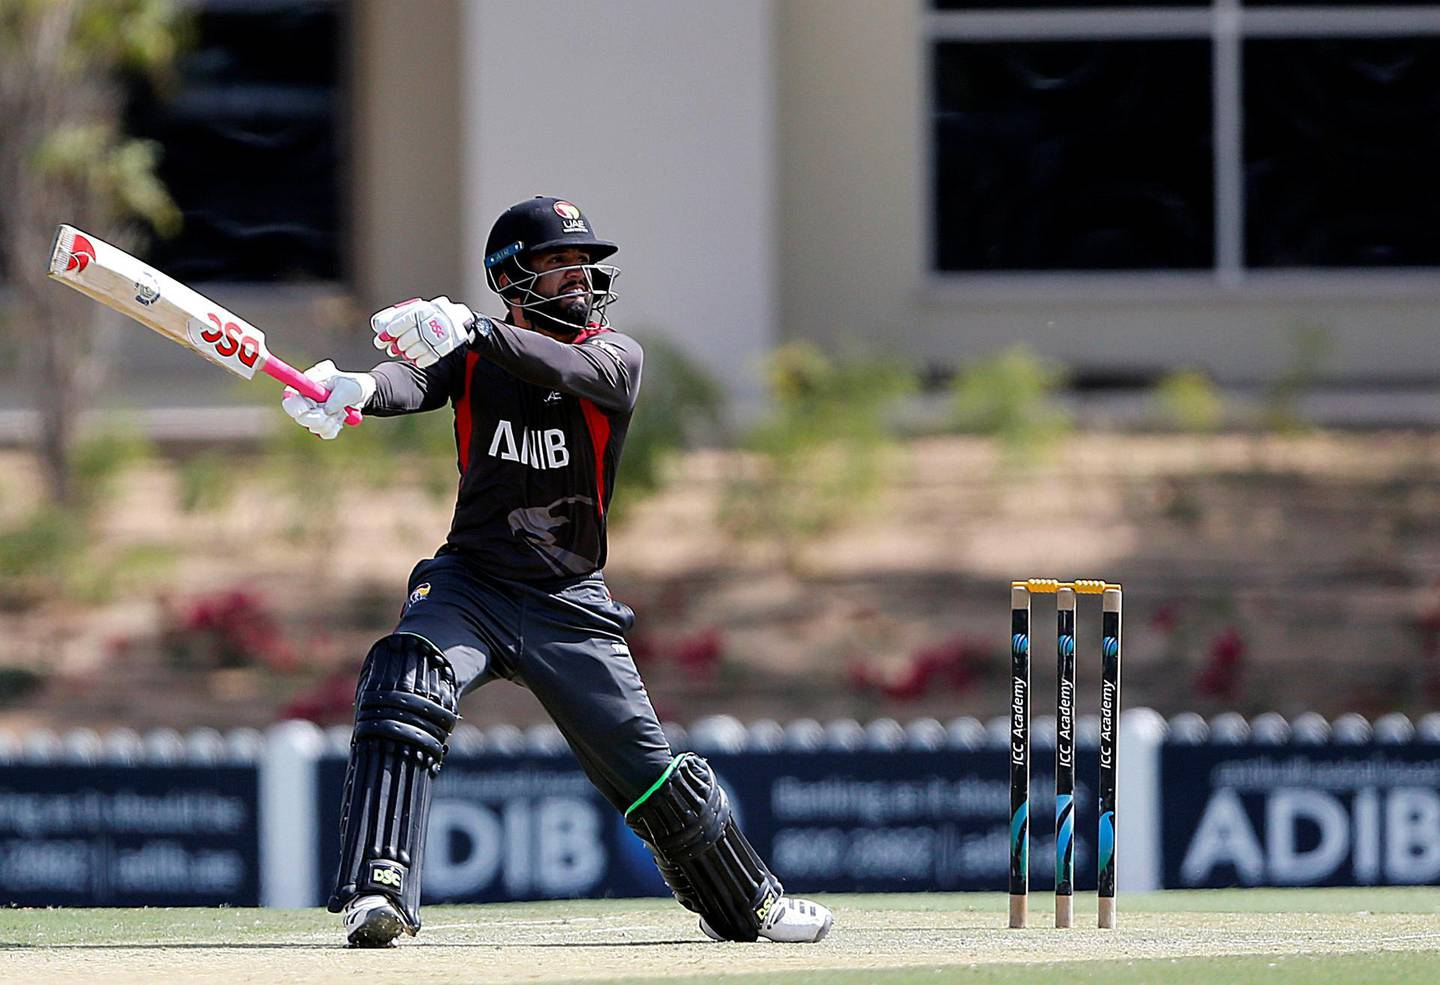 Dubai, March, 16, 2019: Rohan Musthafa of UAE in action during their match against USA in the T20 match at the ICC Academy in Dubai. Satish Kumar/ For the National / Story by Paul Radley